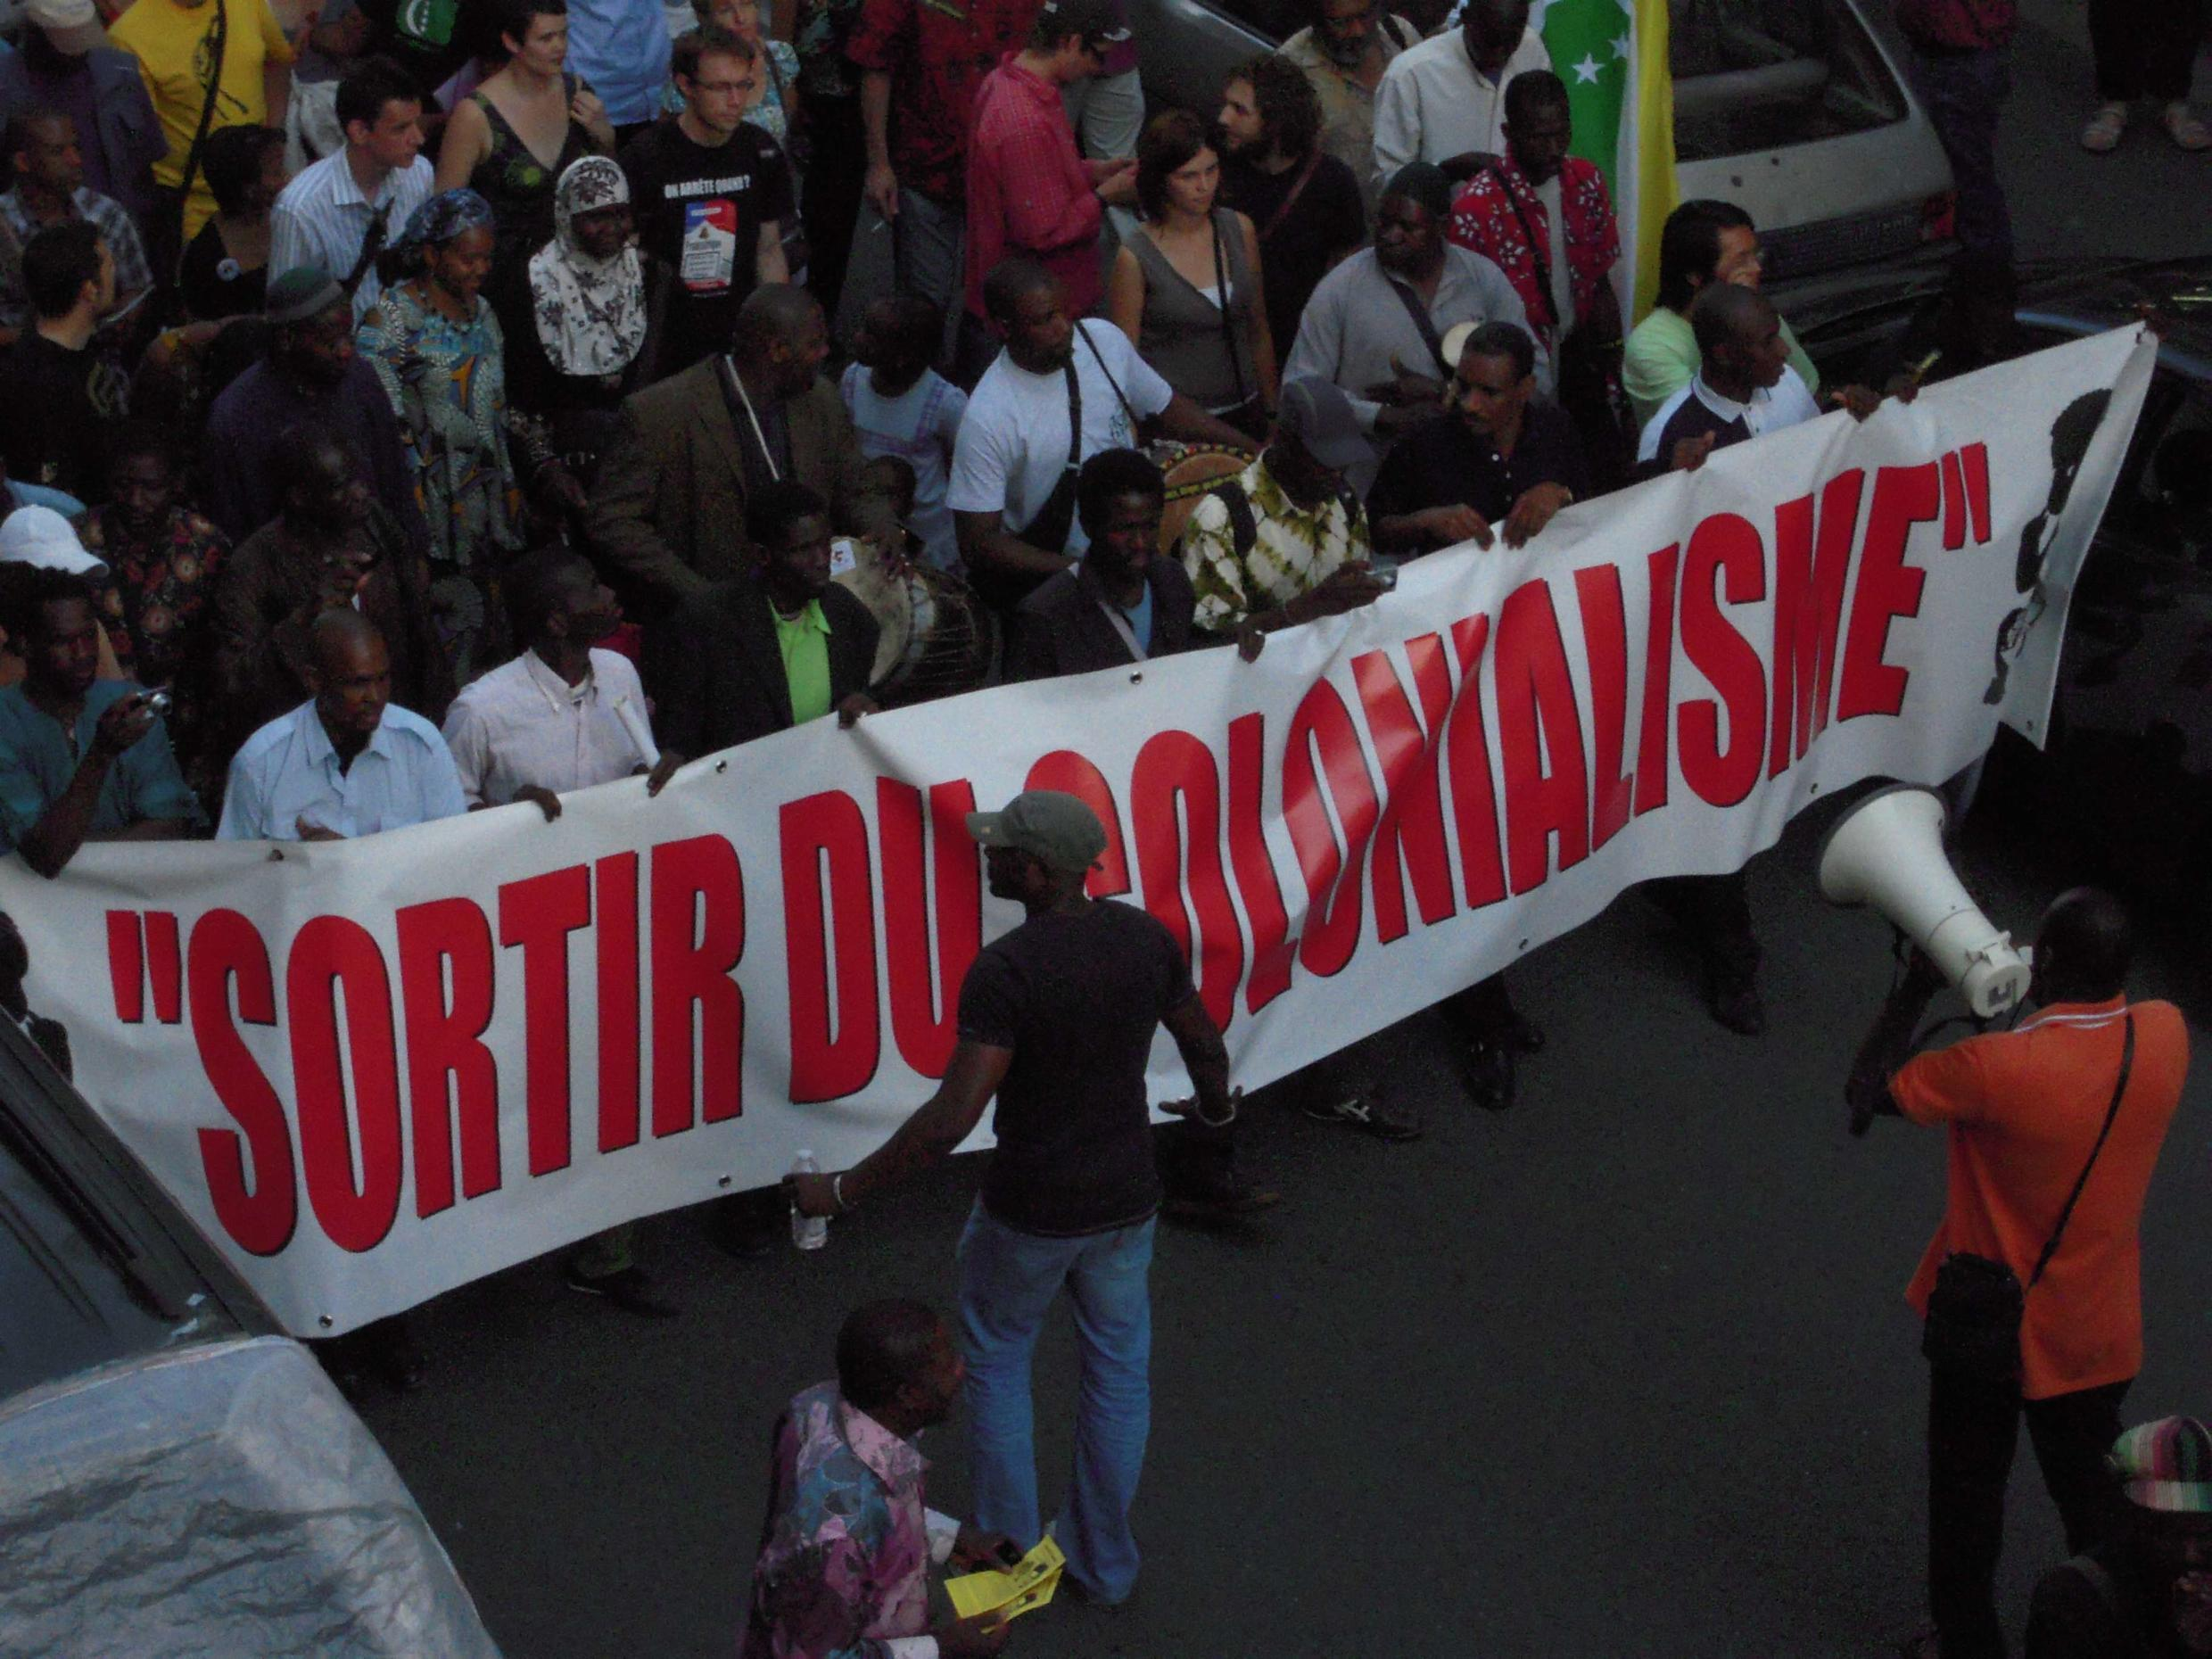 Demonstrators in the 18th district of Paris protesting against an African army parade